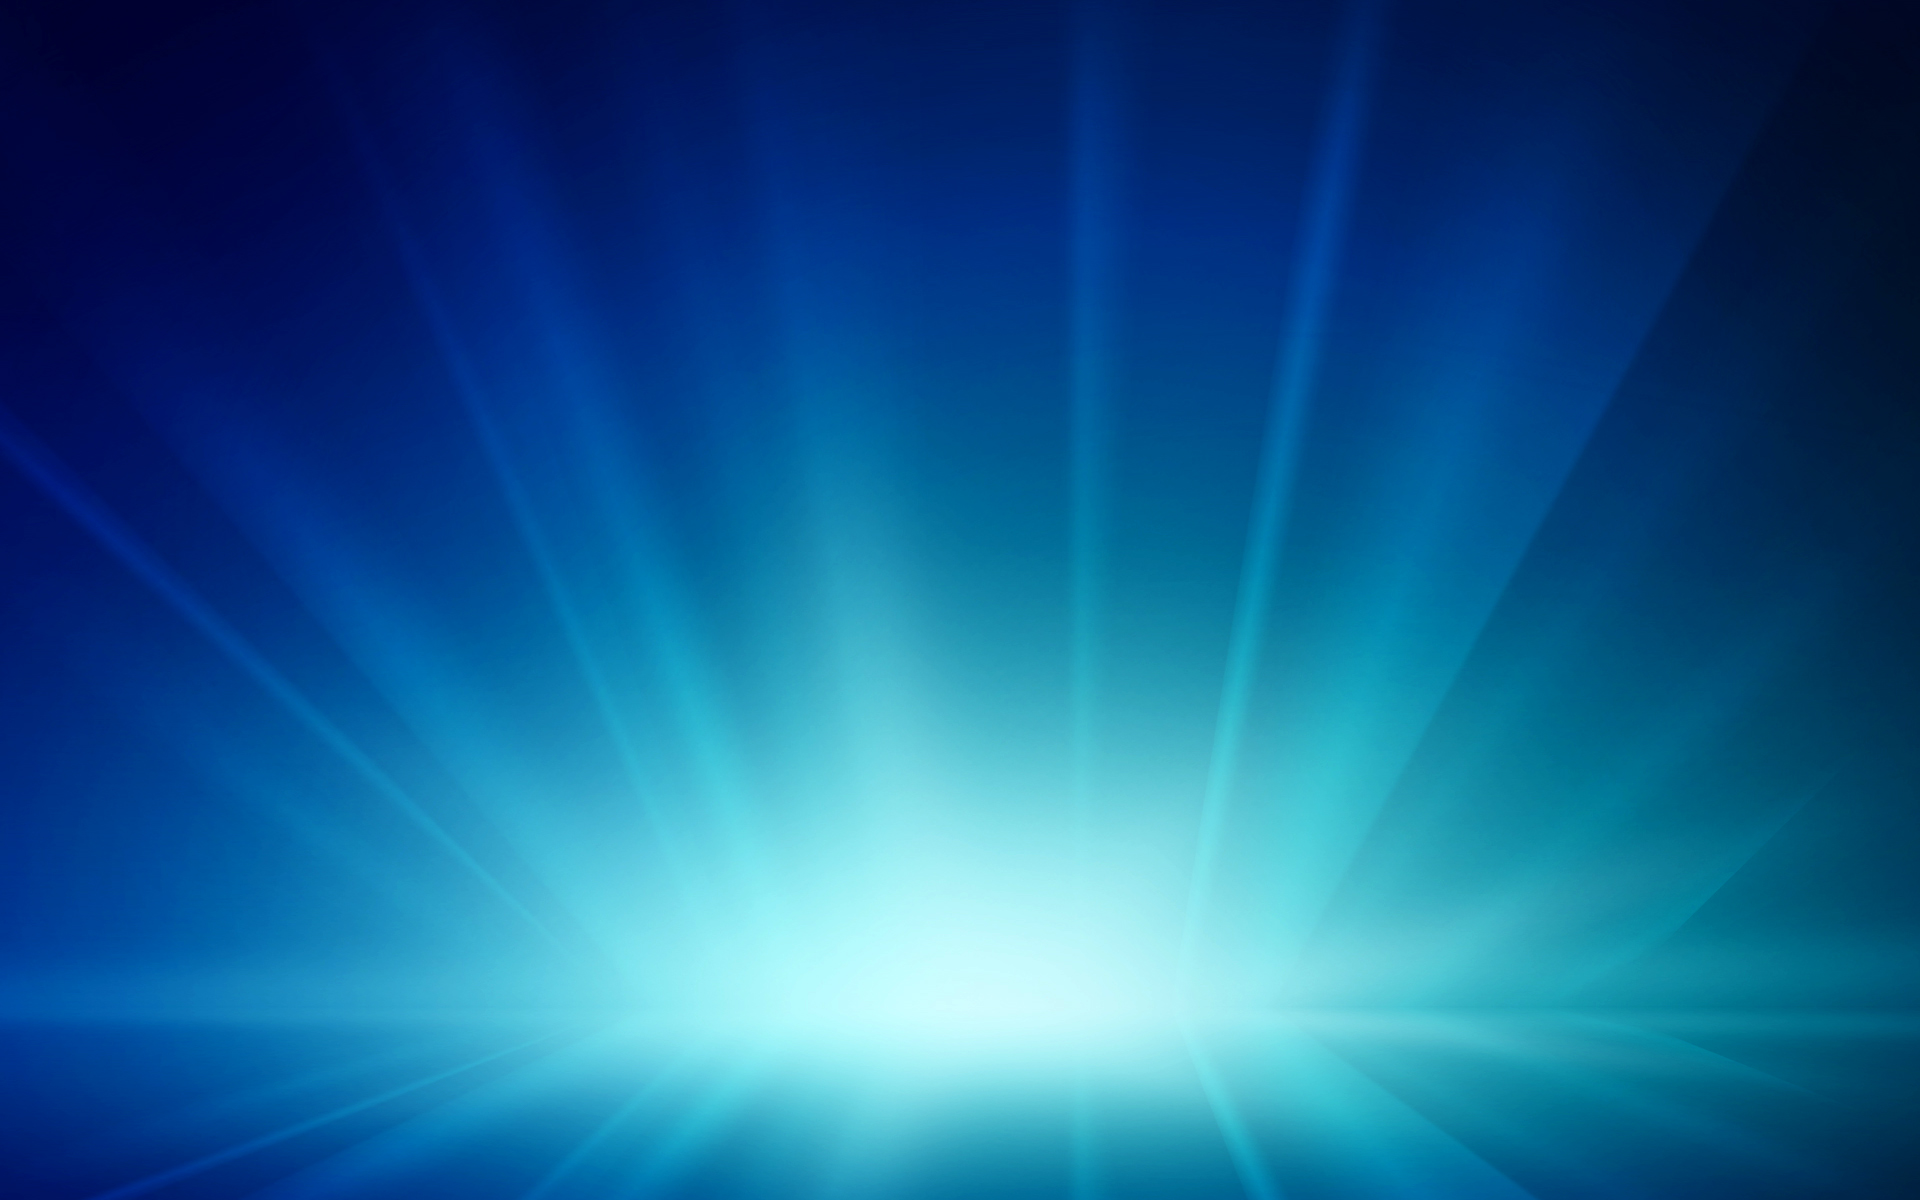 sky blue plain abstract background